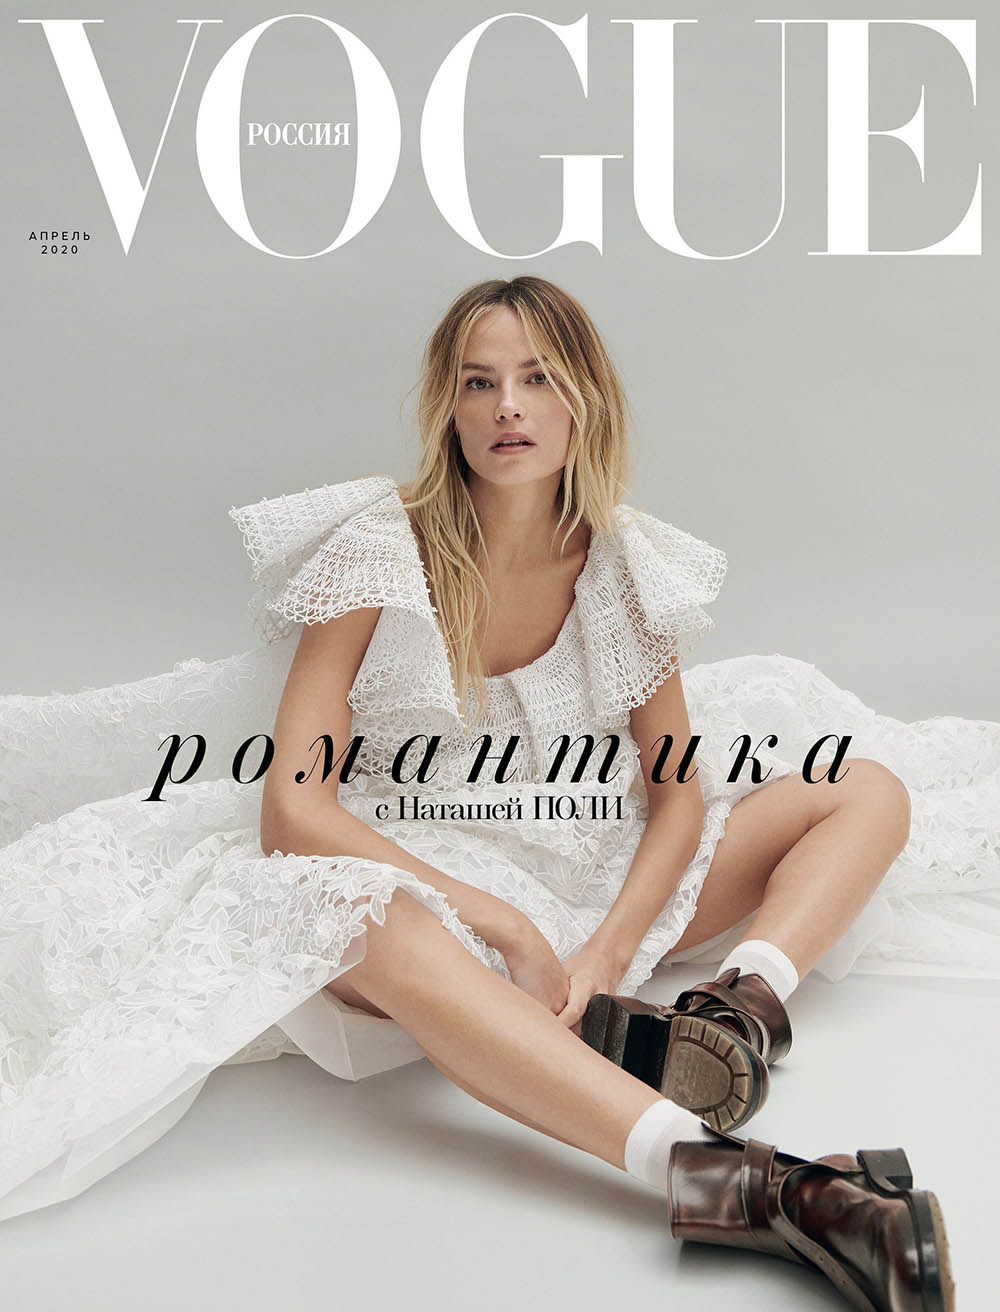 Natasha Poly covers Vogue Russia April 2020 by Claudia Knoepfel